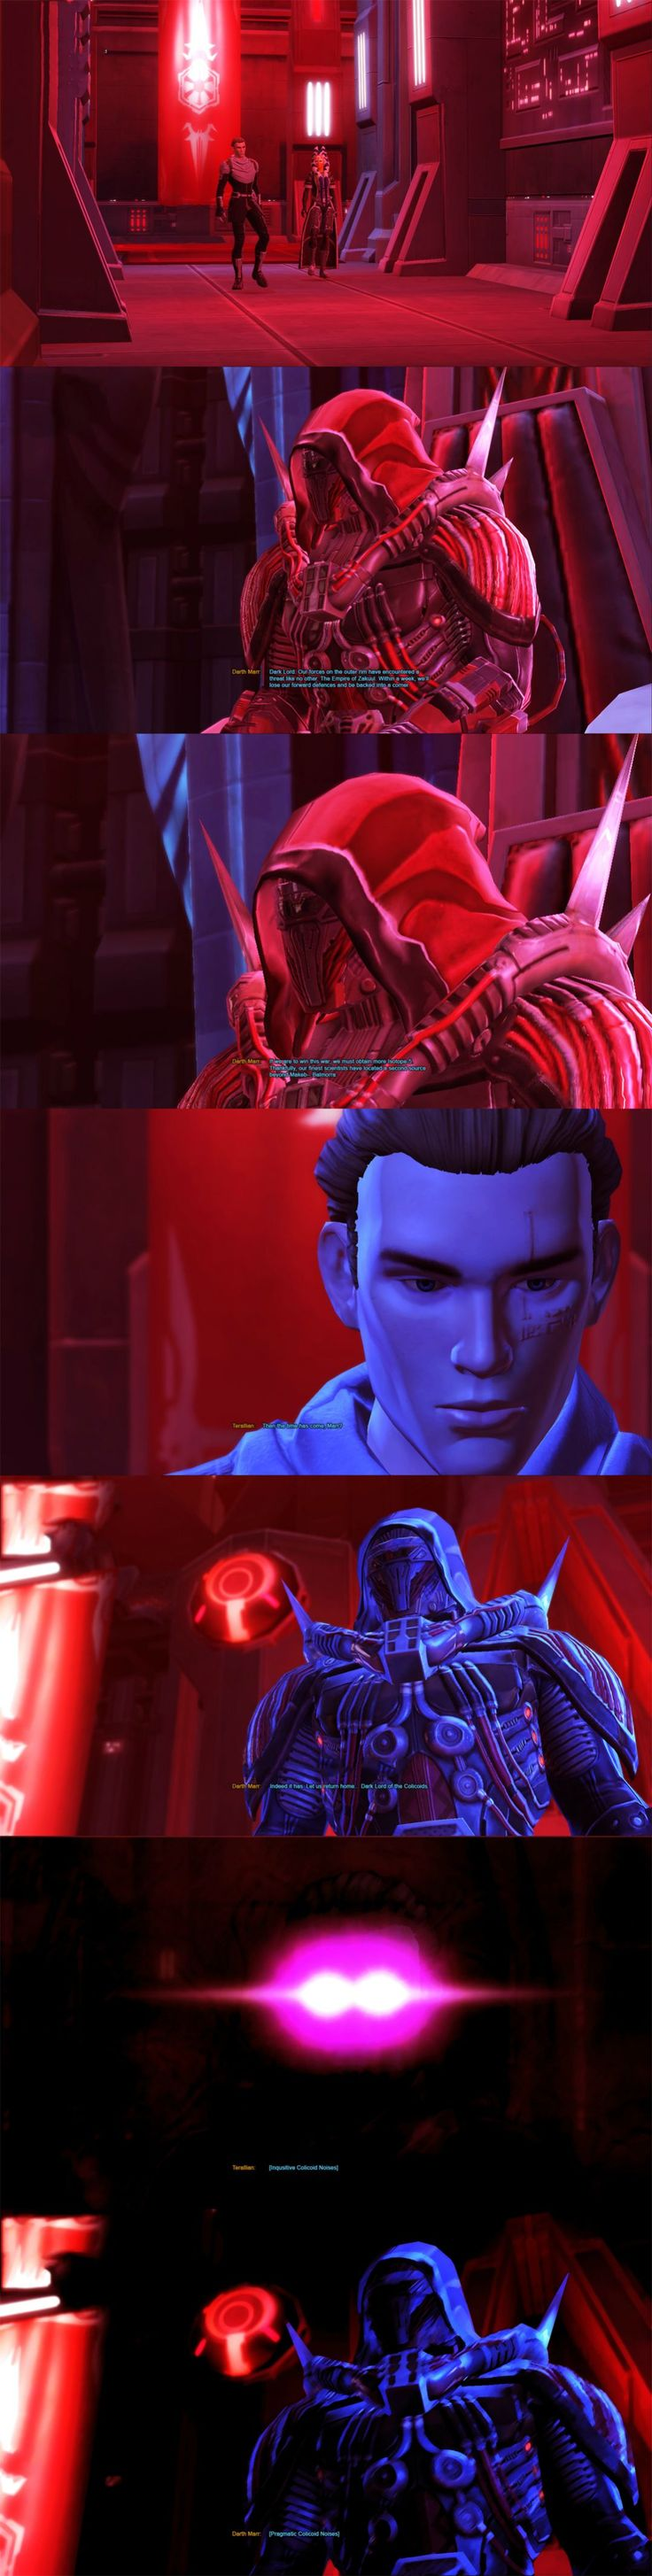 107 best swtor images on pinterest star wars star trek and star darth marr locates more isotope 5 do not miss the 9 discount code fandeluxe Image collections